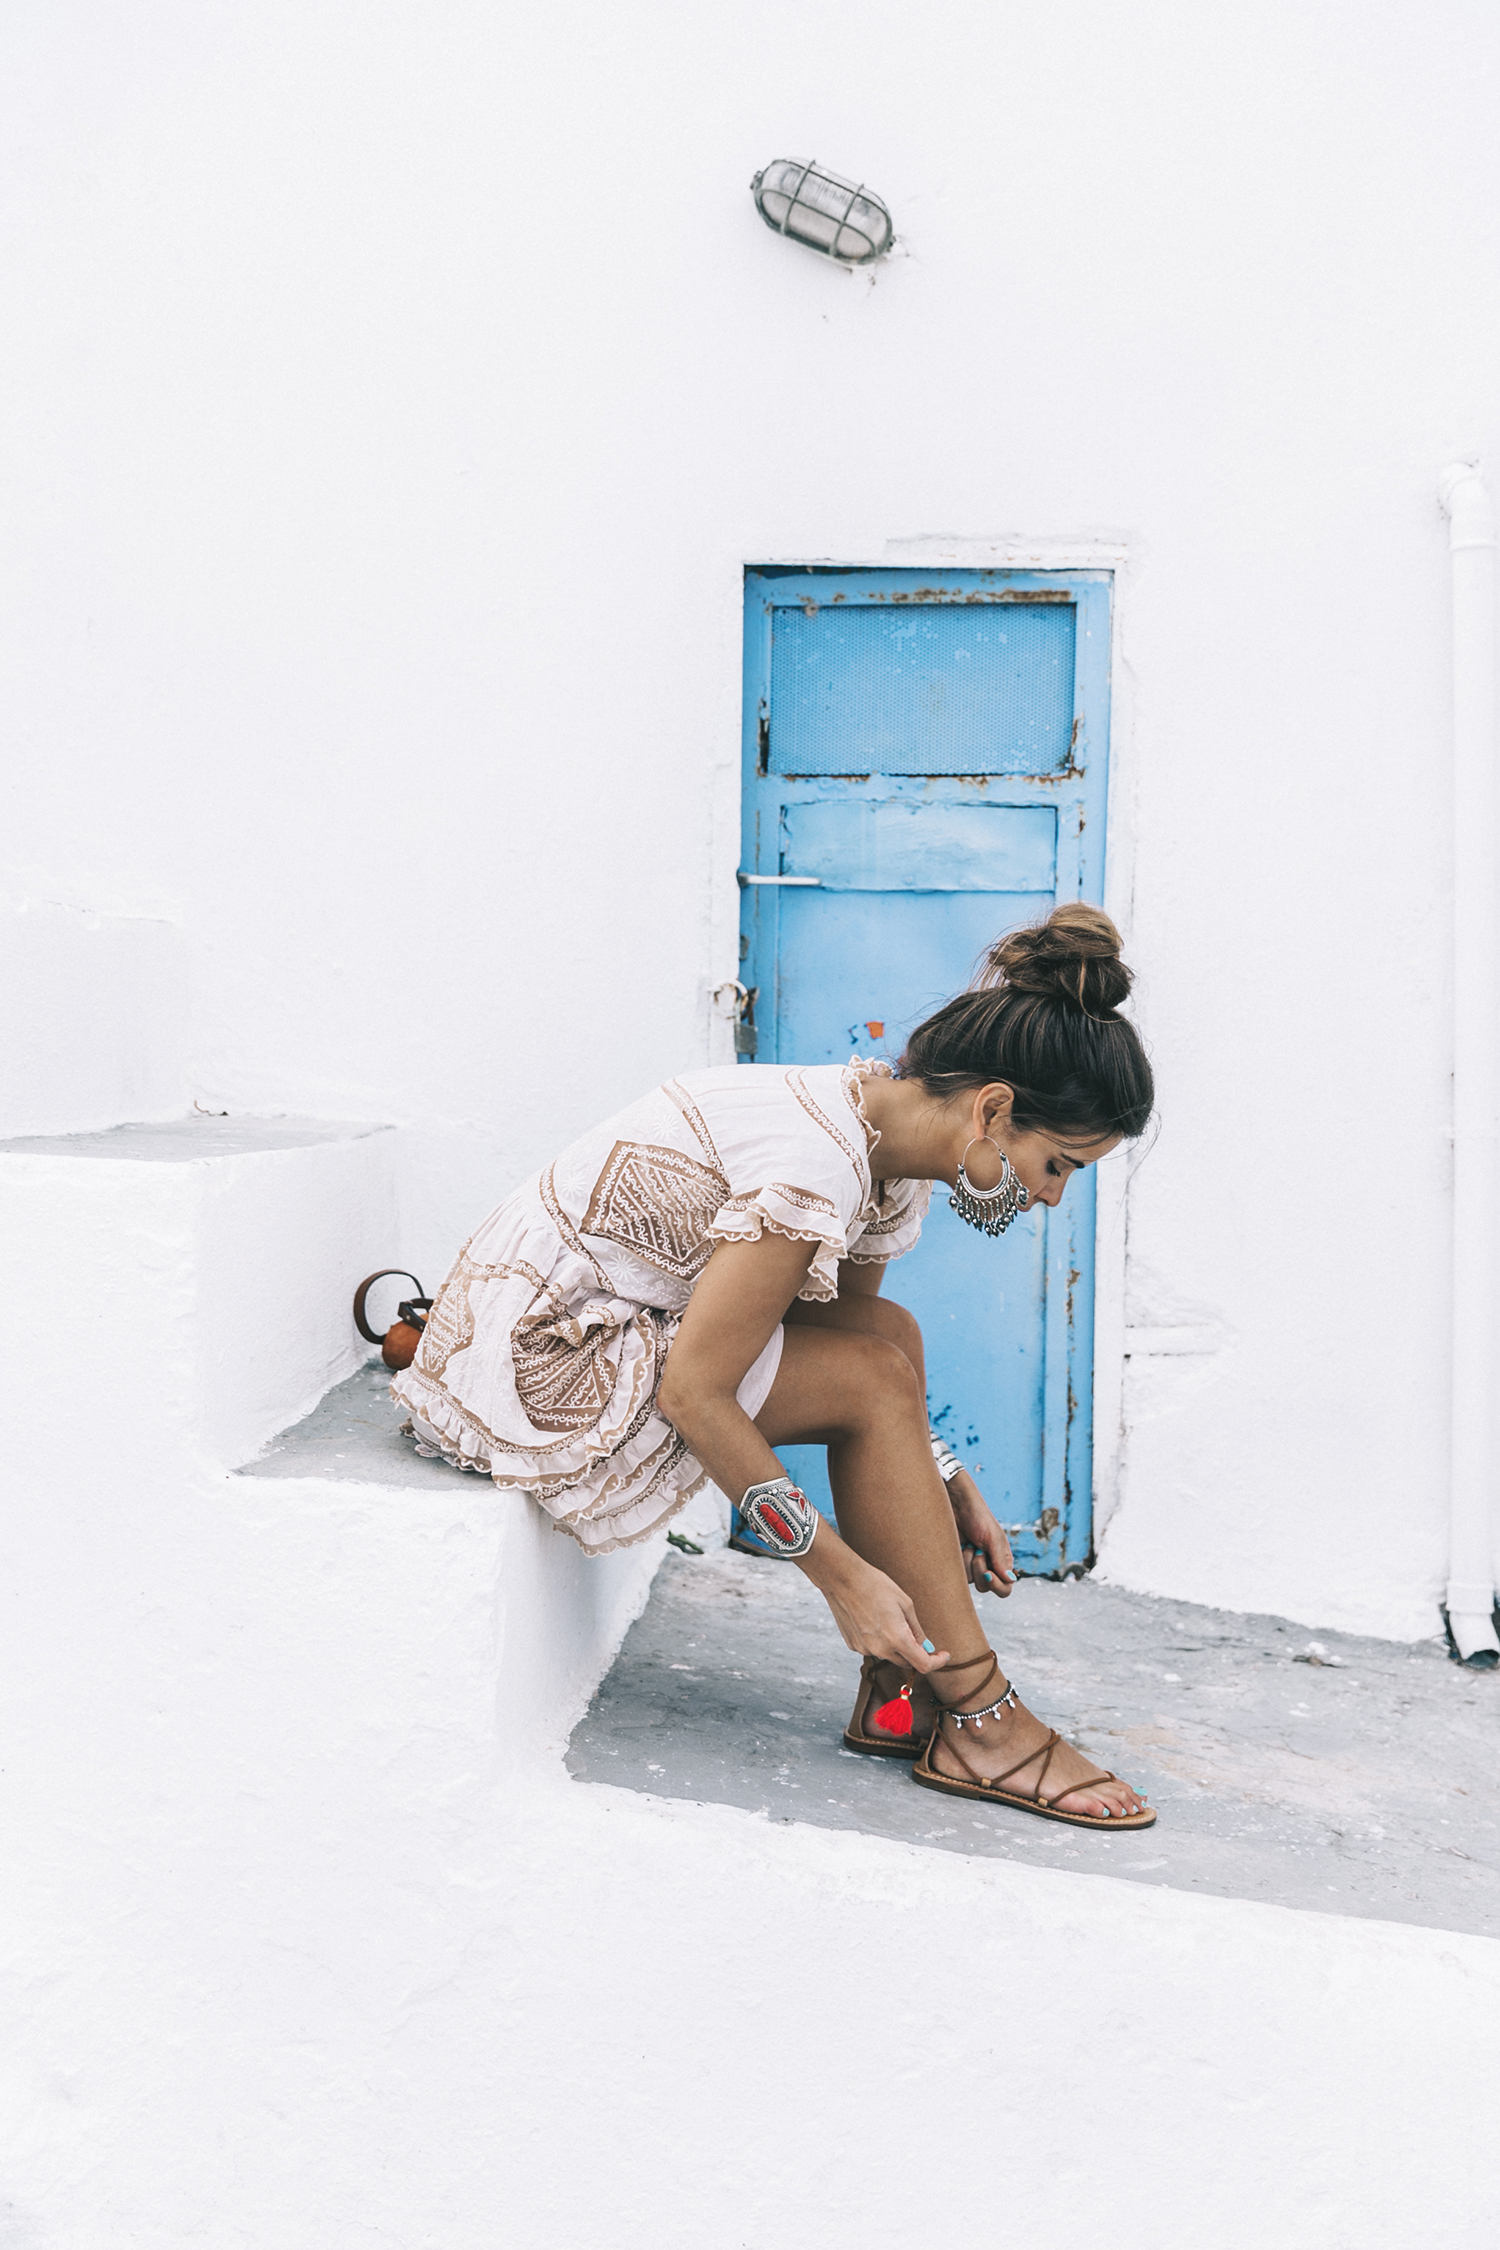 Chloe_Bag-Faye_Bag-For_Love_And_Lemons-Dress-Topknot-Soludos_Escapes-Soludos_Espadrilles-Summer-Santorini-Collage_Vintage-12